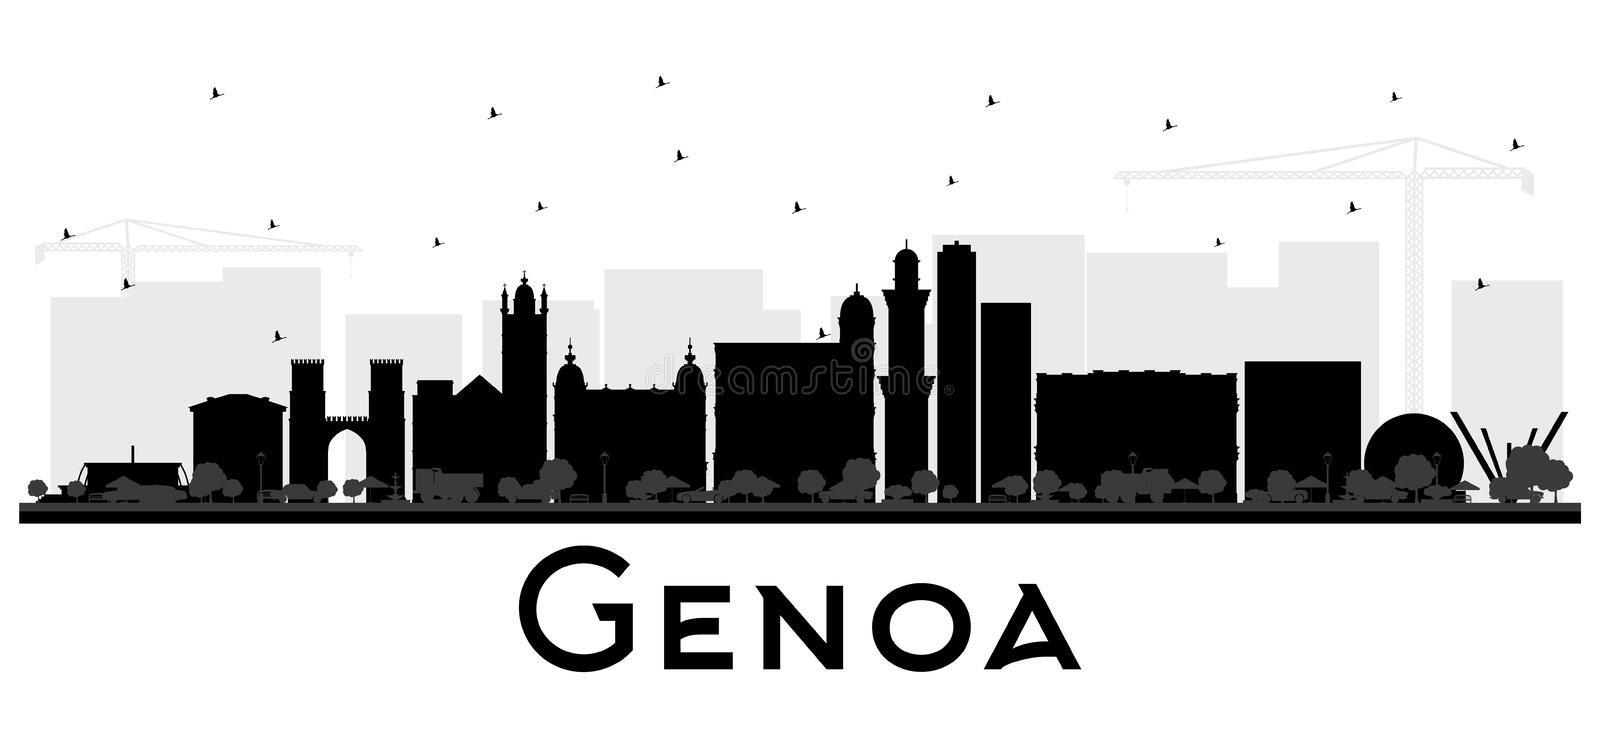 Genoa Italy City Skyline with Black Buildings Isolated on White. Vector Illustration. Business Travel and Tourism Concept with Modern Architecture. Genoa stock illustration